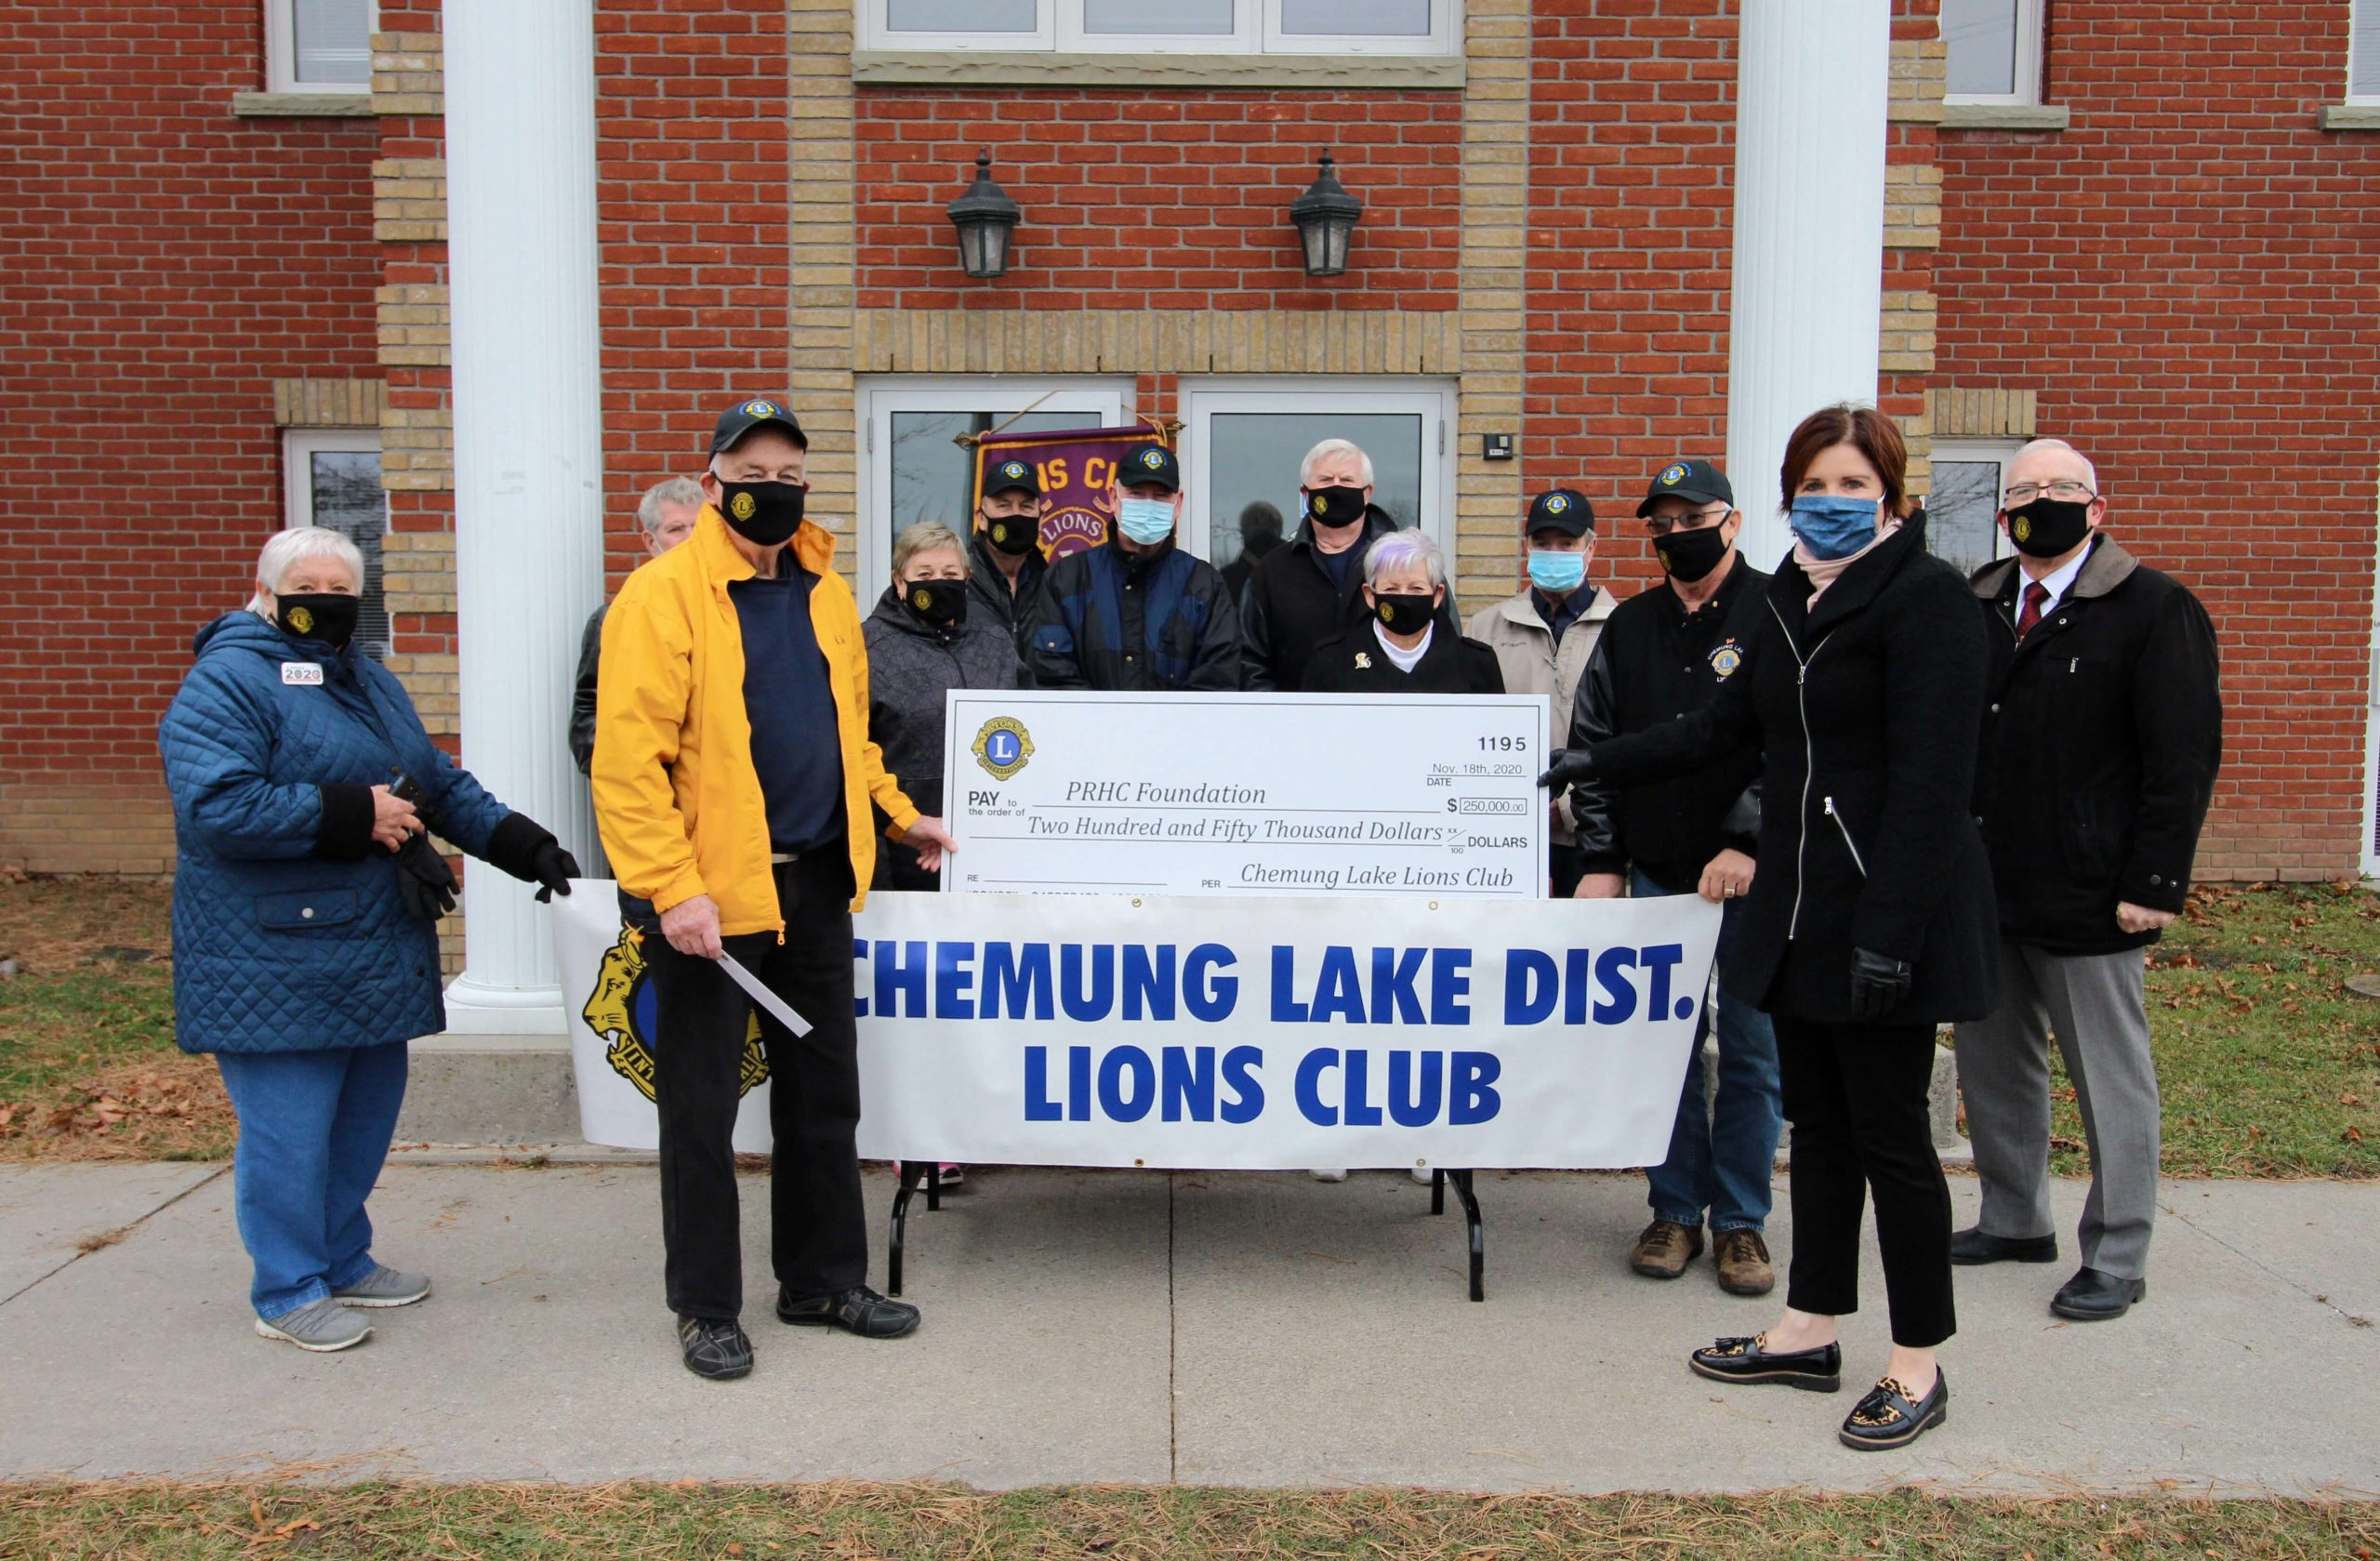 Lions Club member presents a large cheque